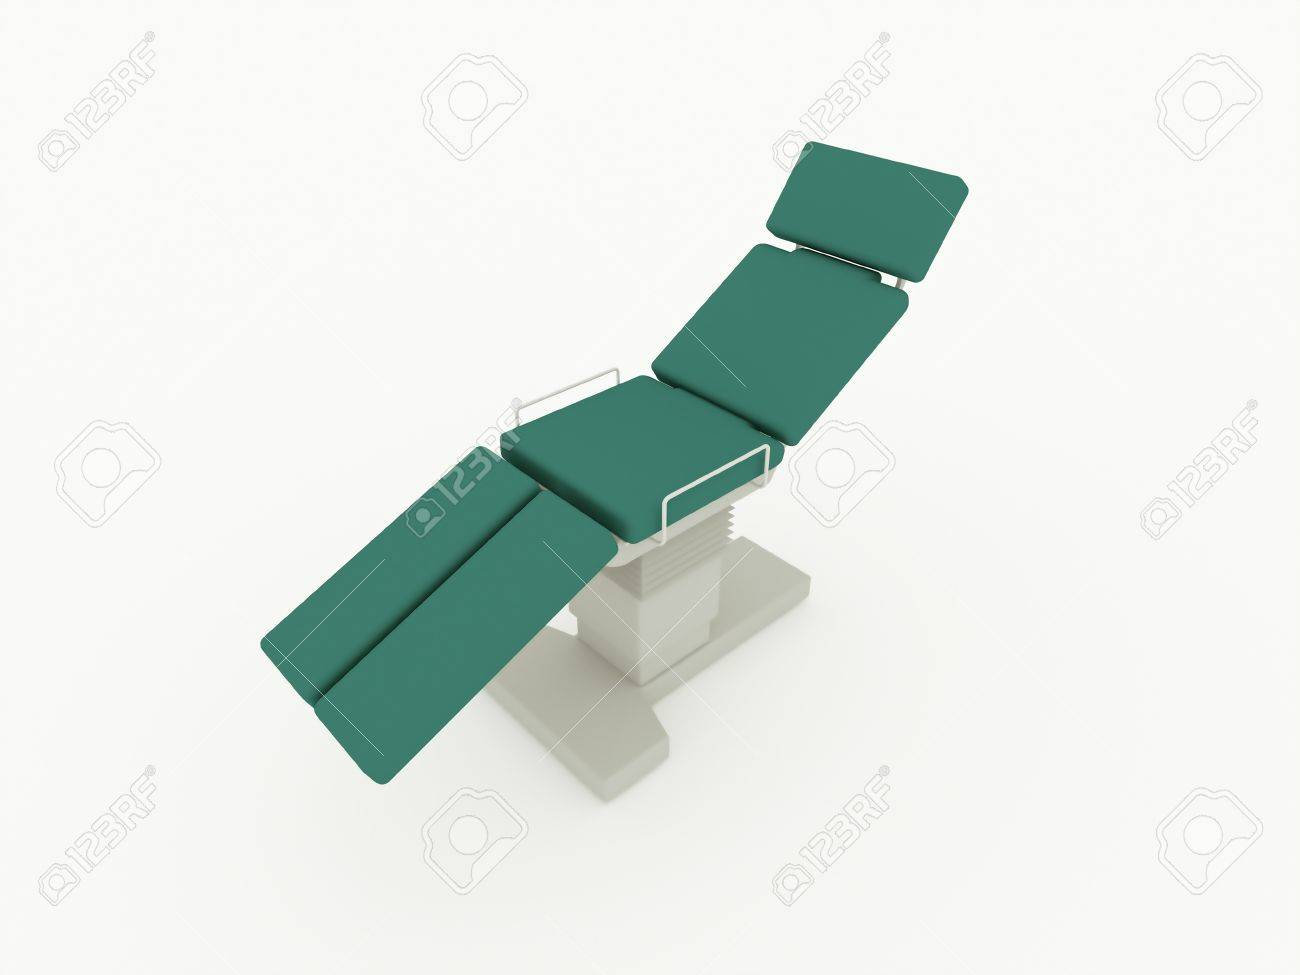 Dentist chair rendered isolated on white background Stock Photo - 22147681